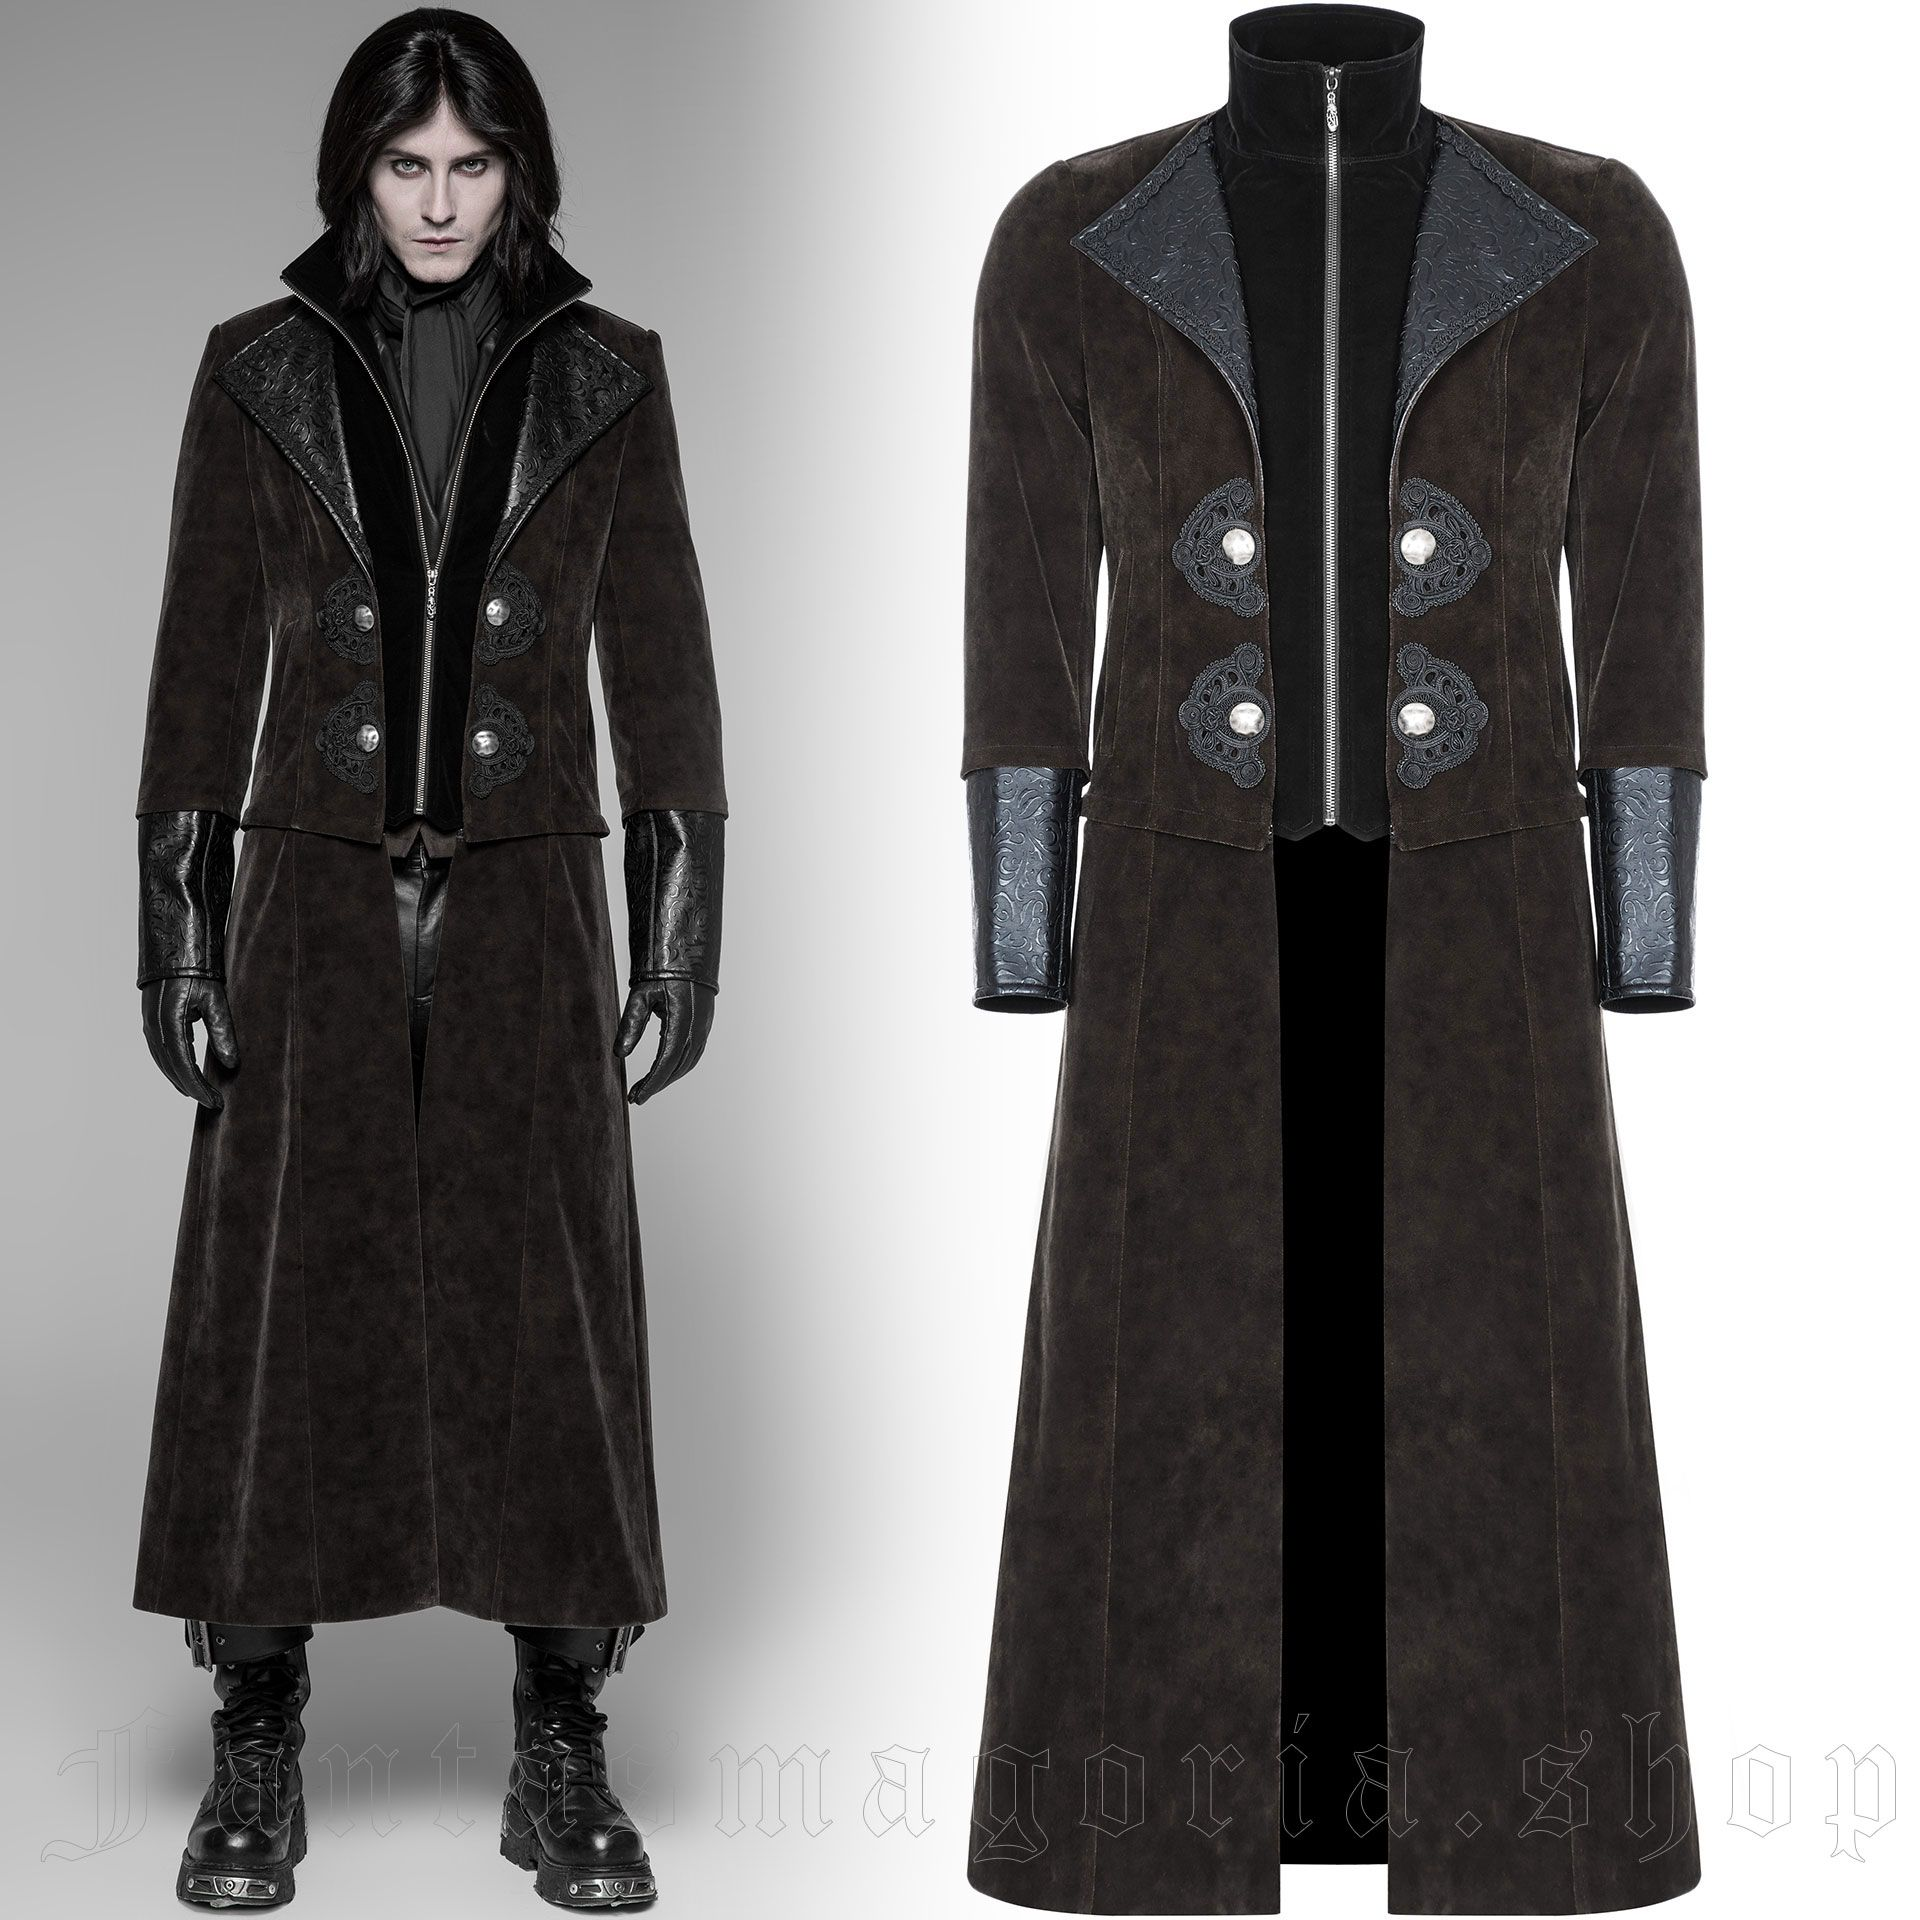 men's Ghostwood Jacket-Coat by PUNK RAVE brand, code: WY-908/CO